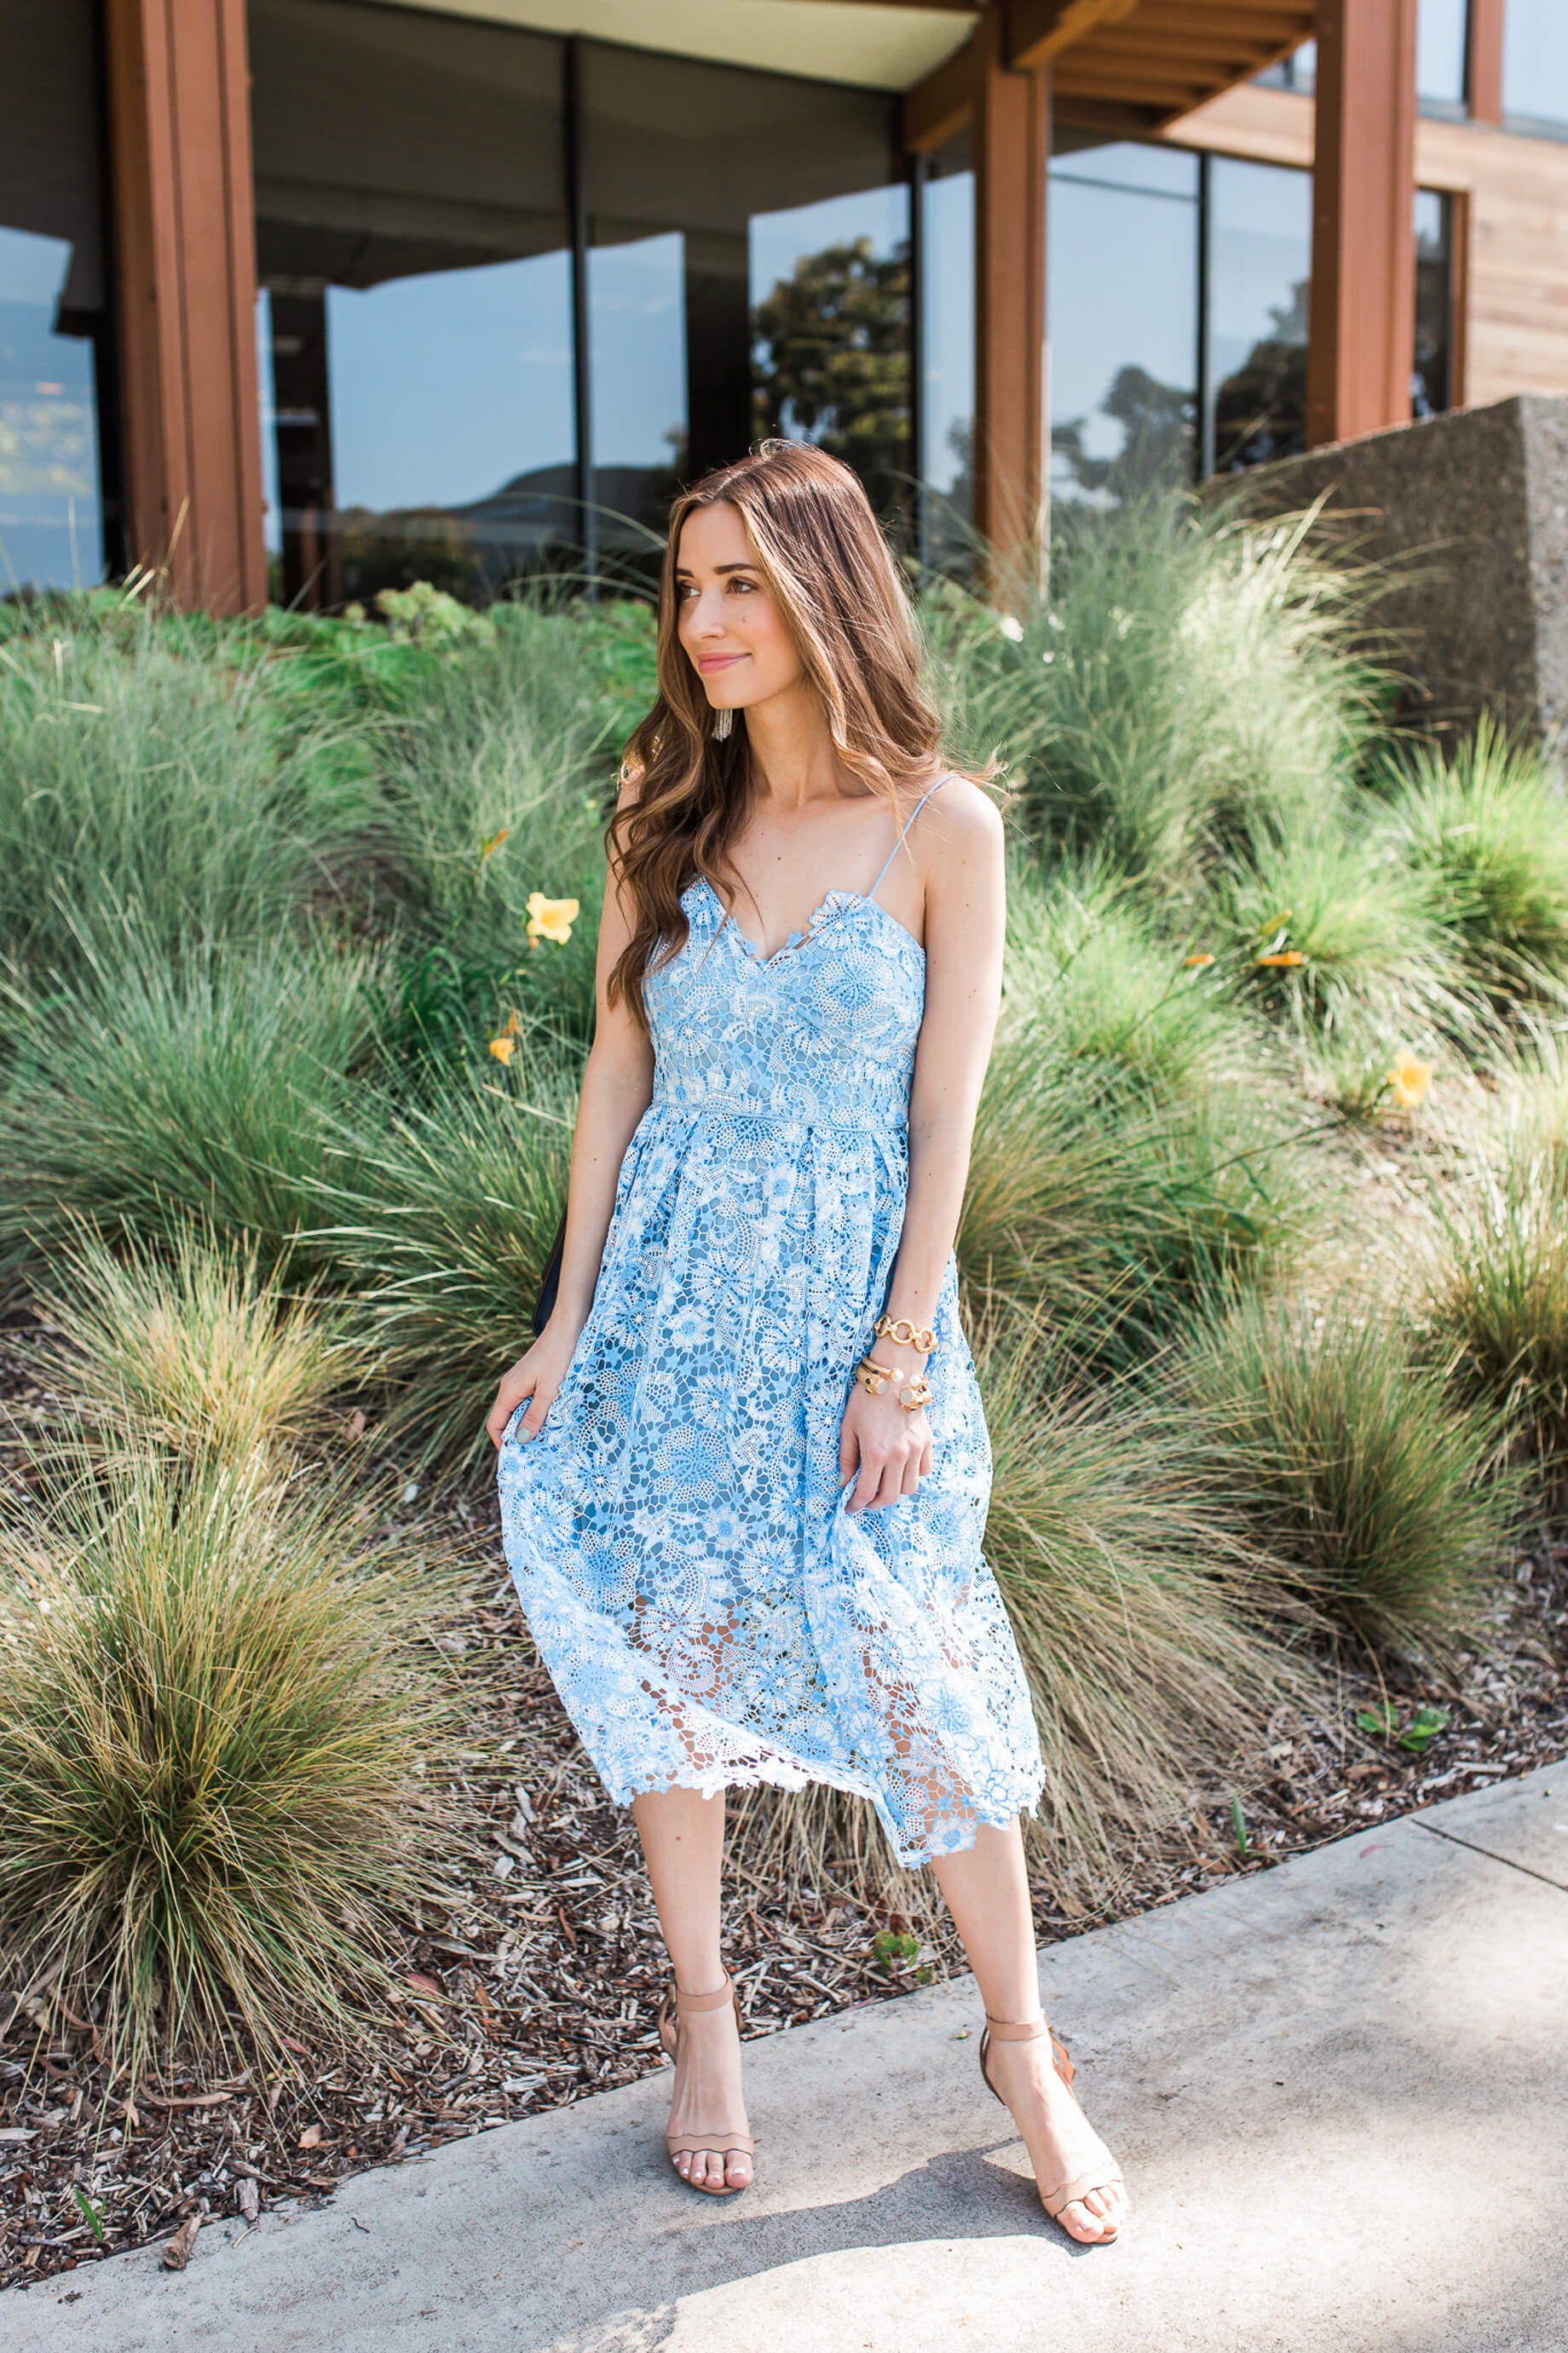 My wedding guest dresses guide! | M Loves M @marmar